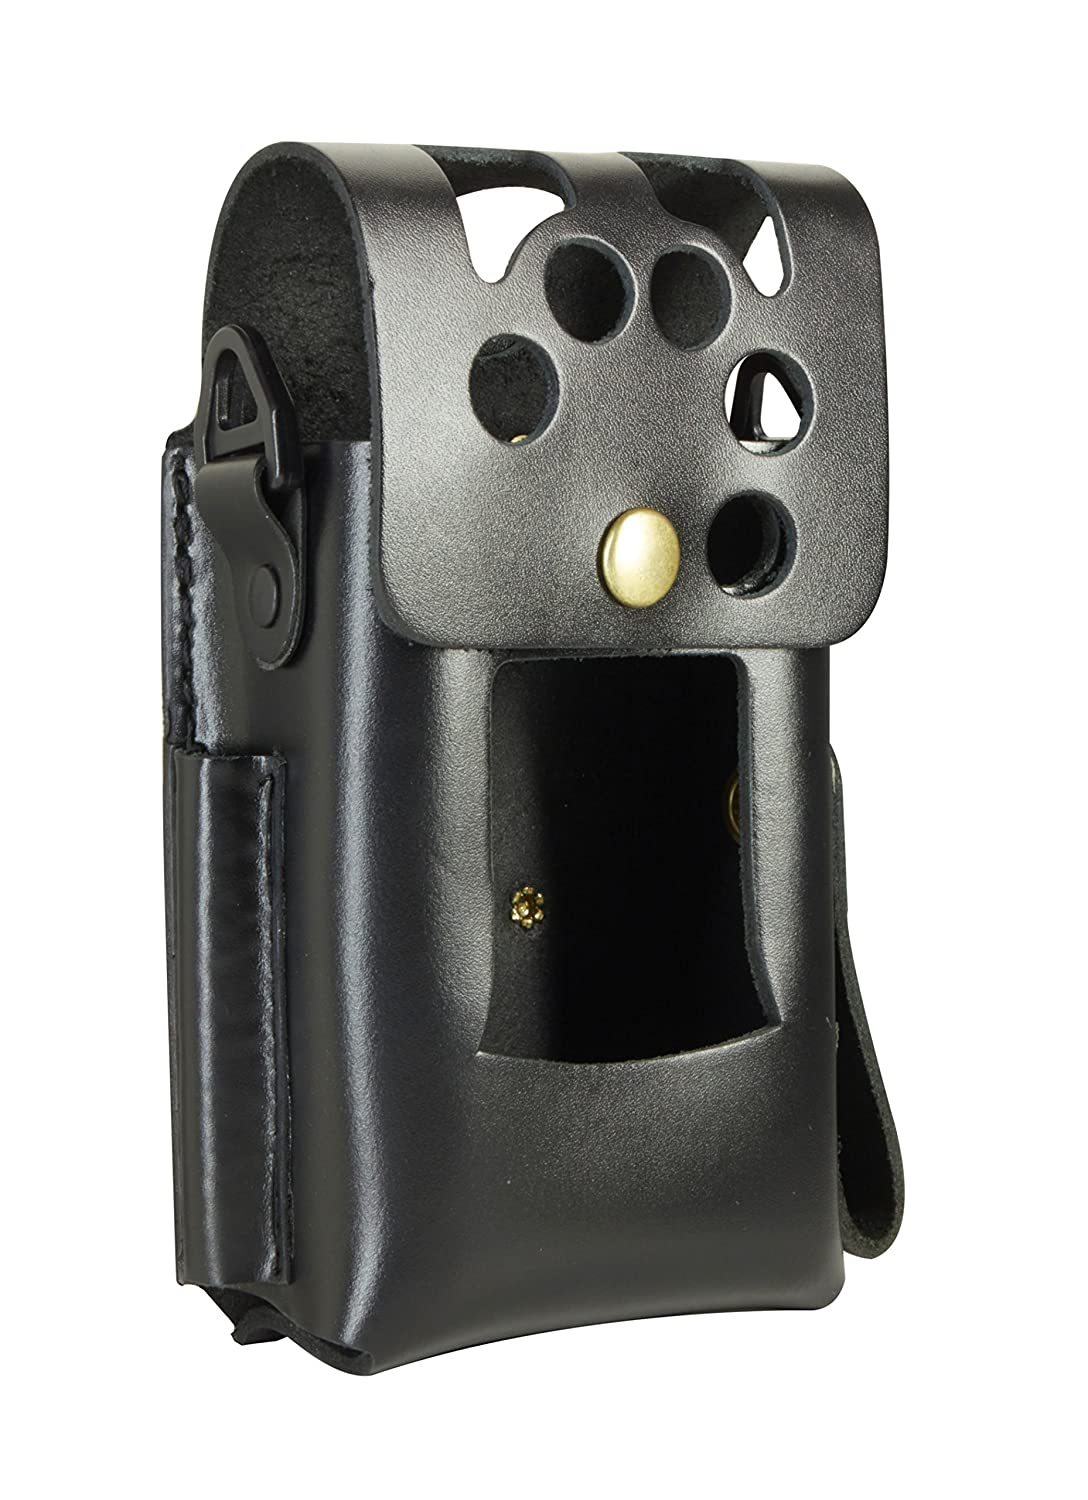 MSA 10099648 Gas Detector Leather Holster for Altair 5/5IR Multi-Gas Detector: Amazon.com: Industrial & Scientific